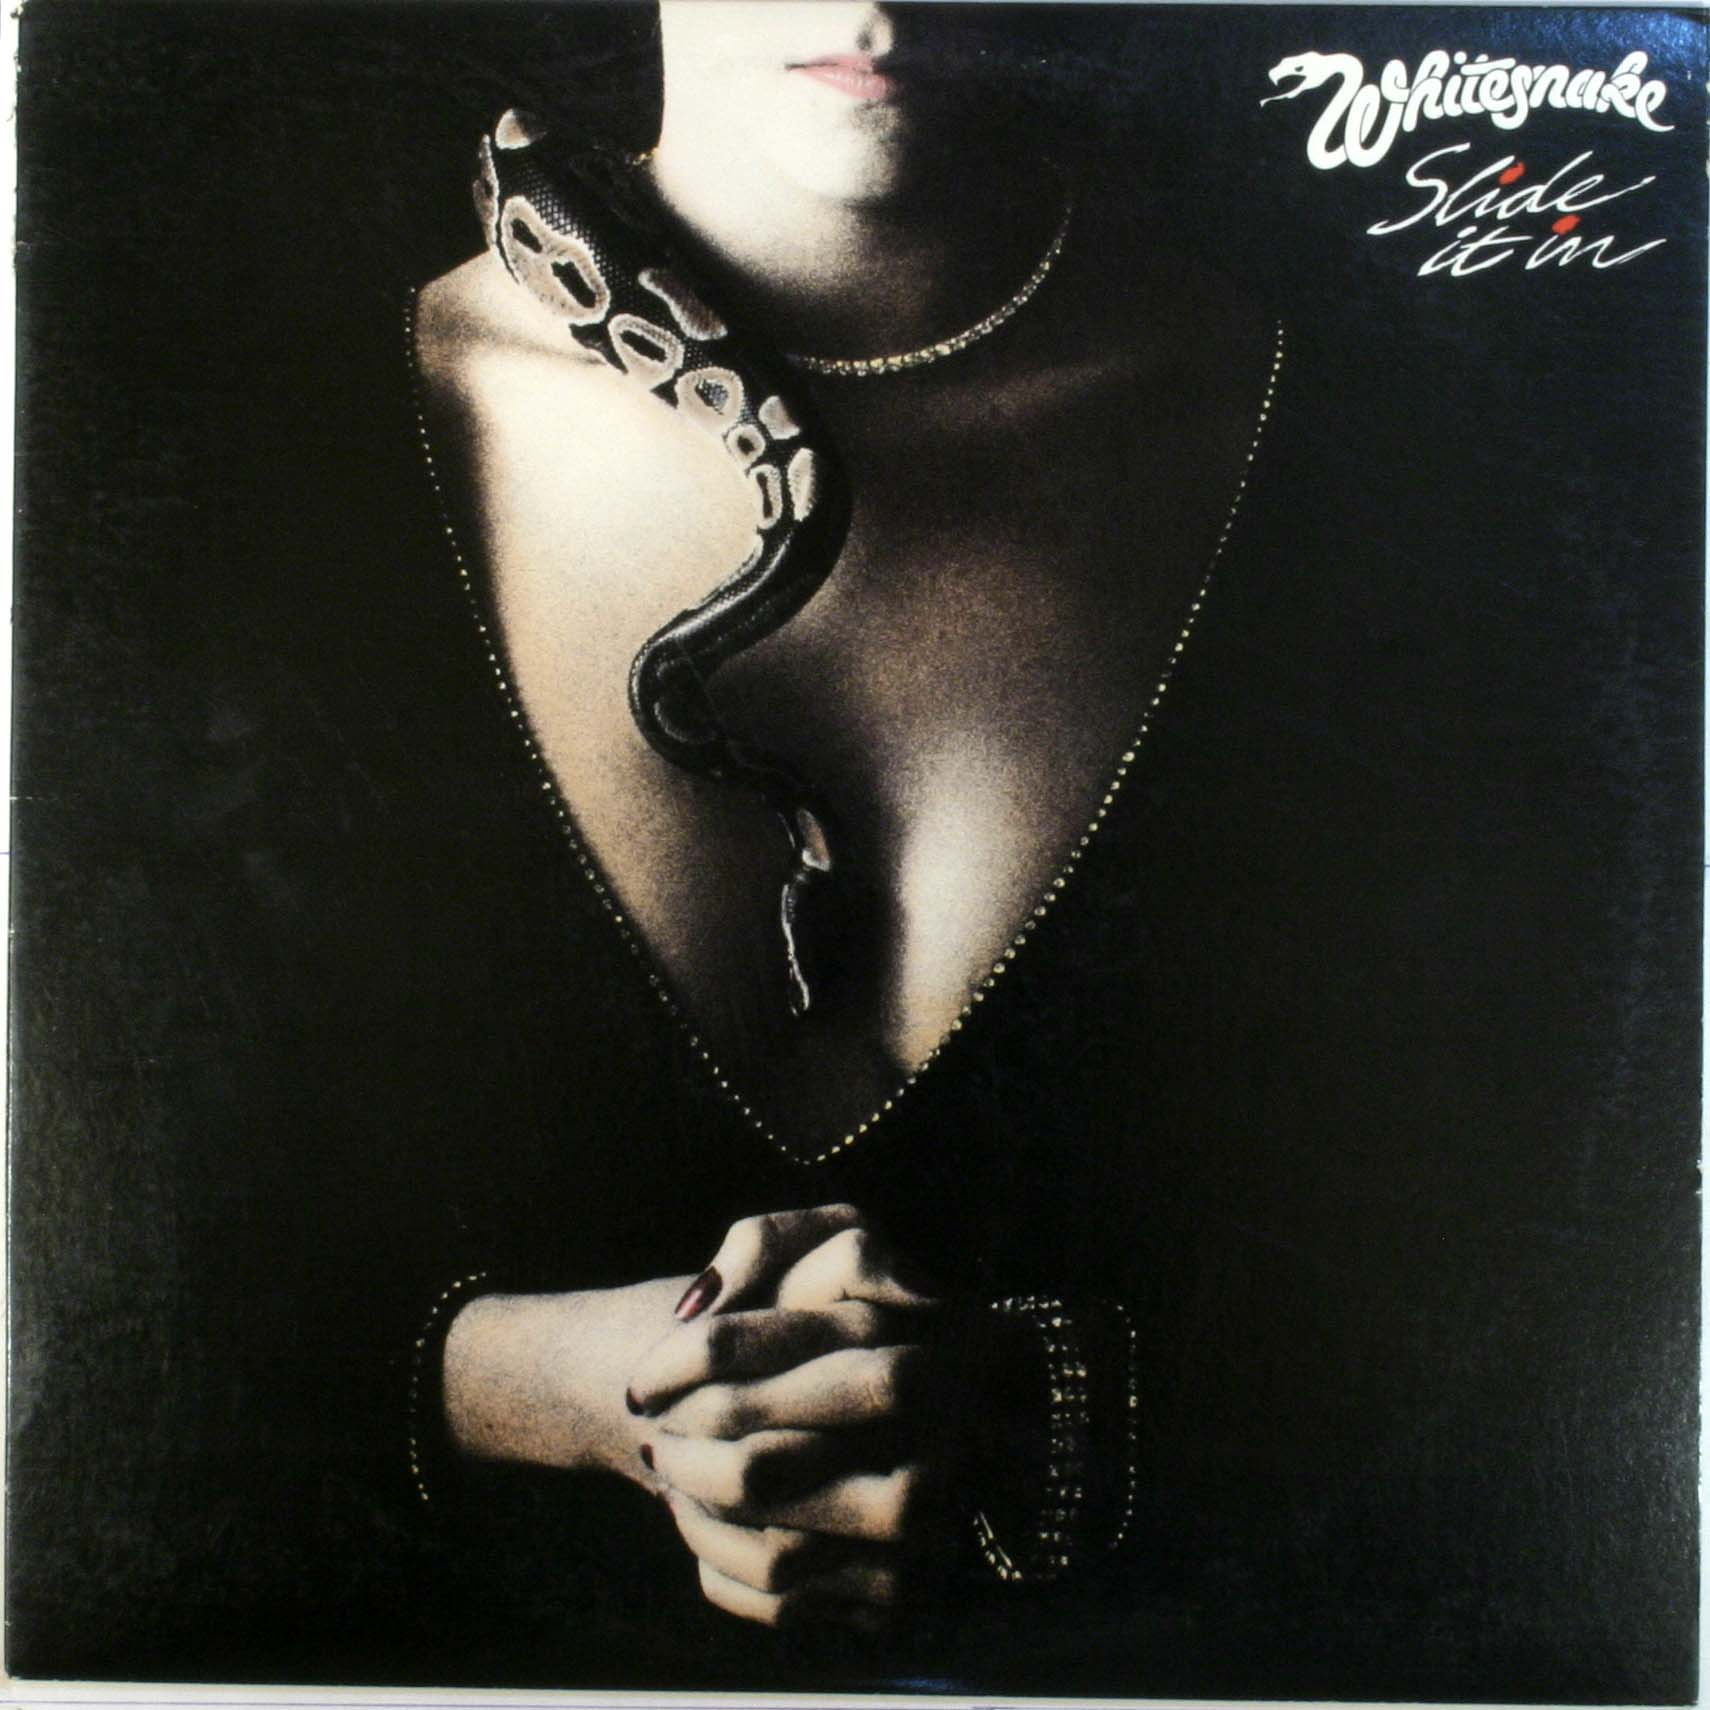 Whitesnake Slide It In LP